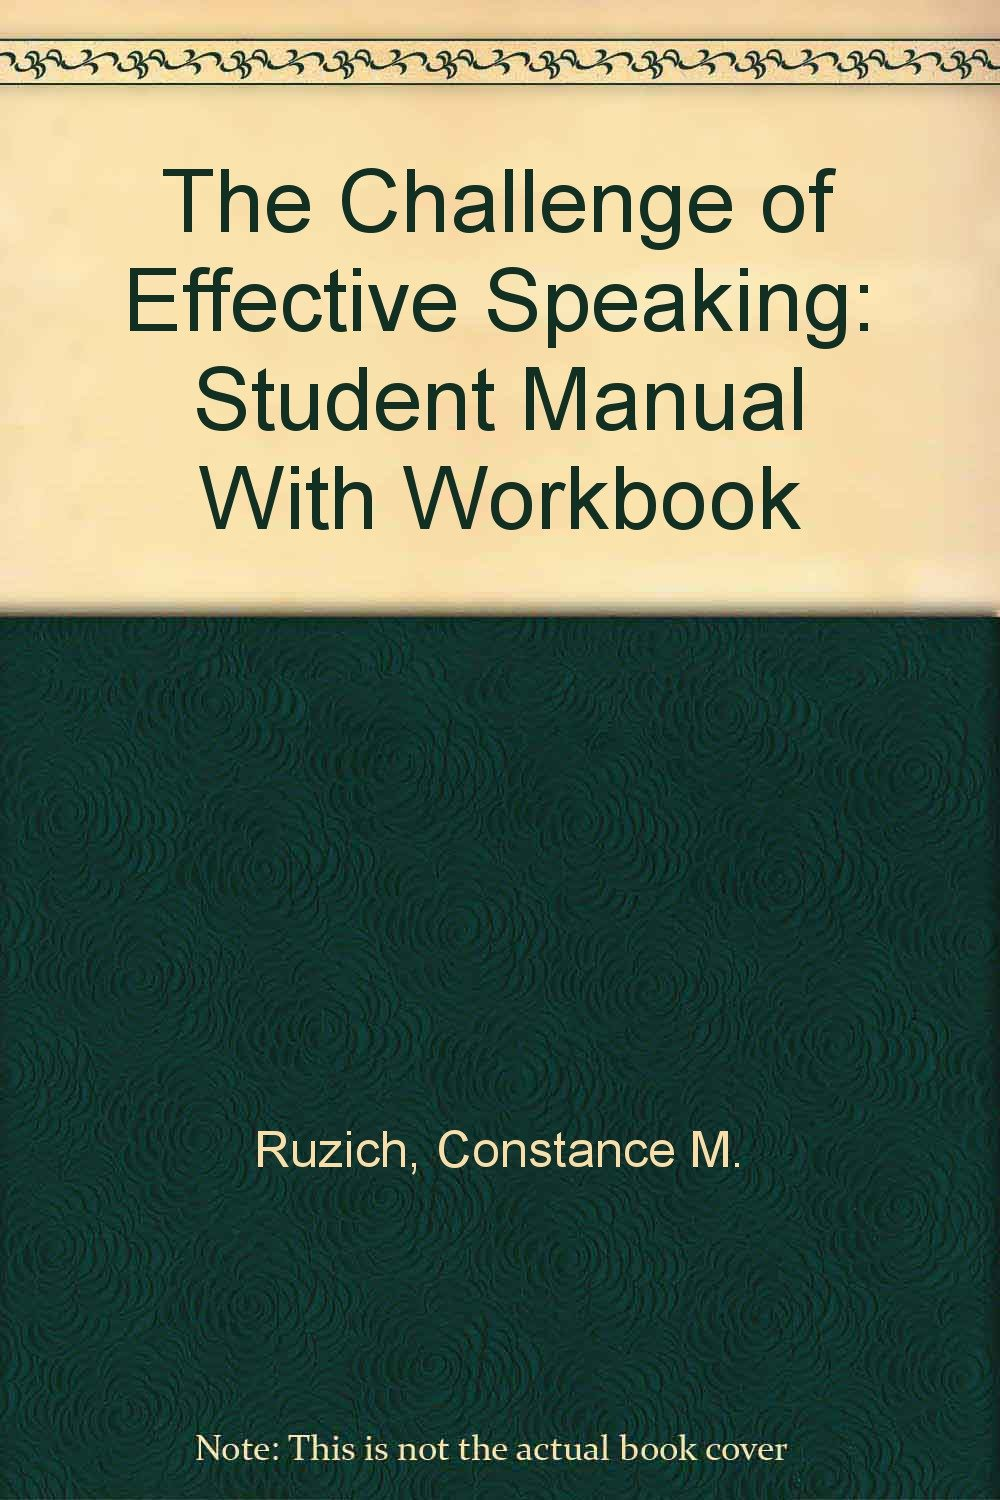 The Challenge of Effective Speaking: Student Manual With Workbook ebook